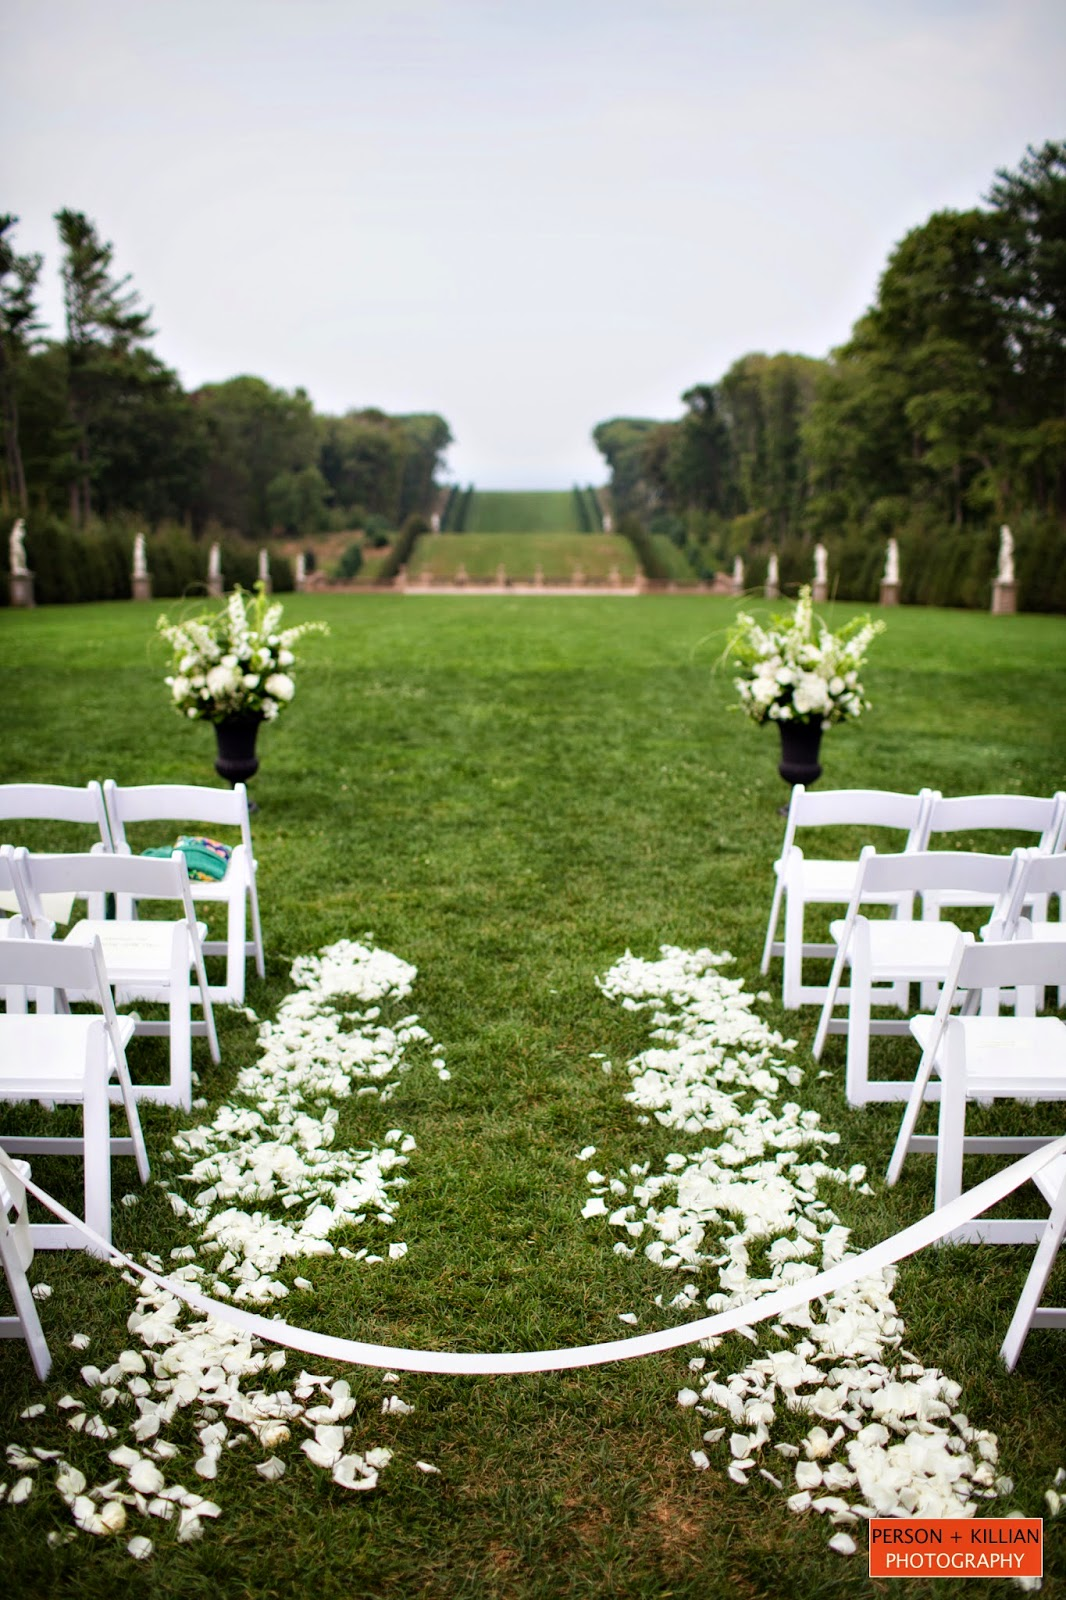 les fleurs : crane estate grand allele : person + killian photography : outdoor ceremony : black garden urn arrangements : white rose petals down aisle